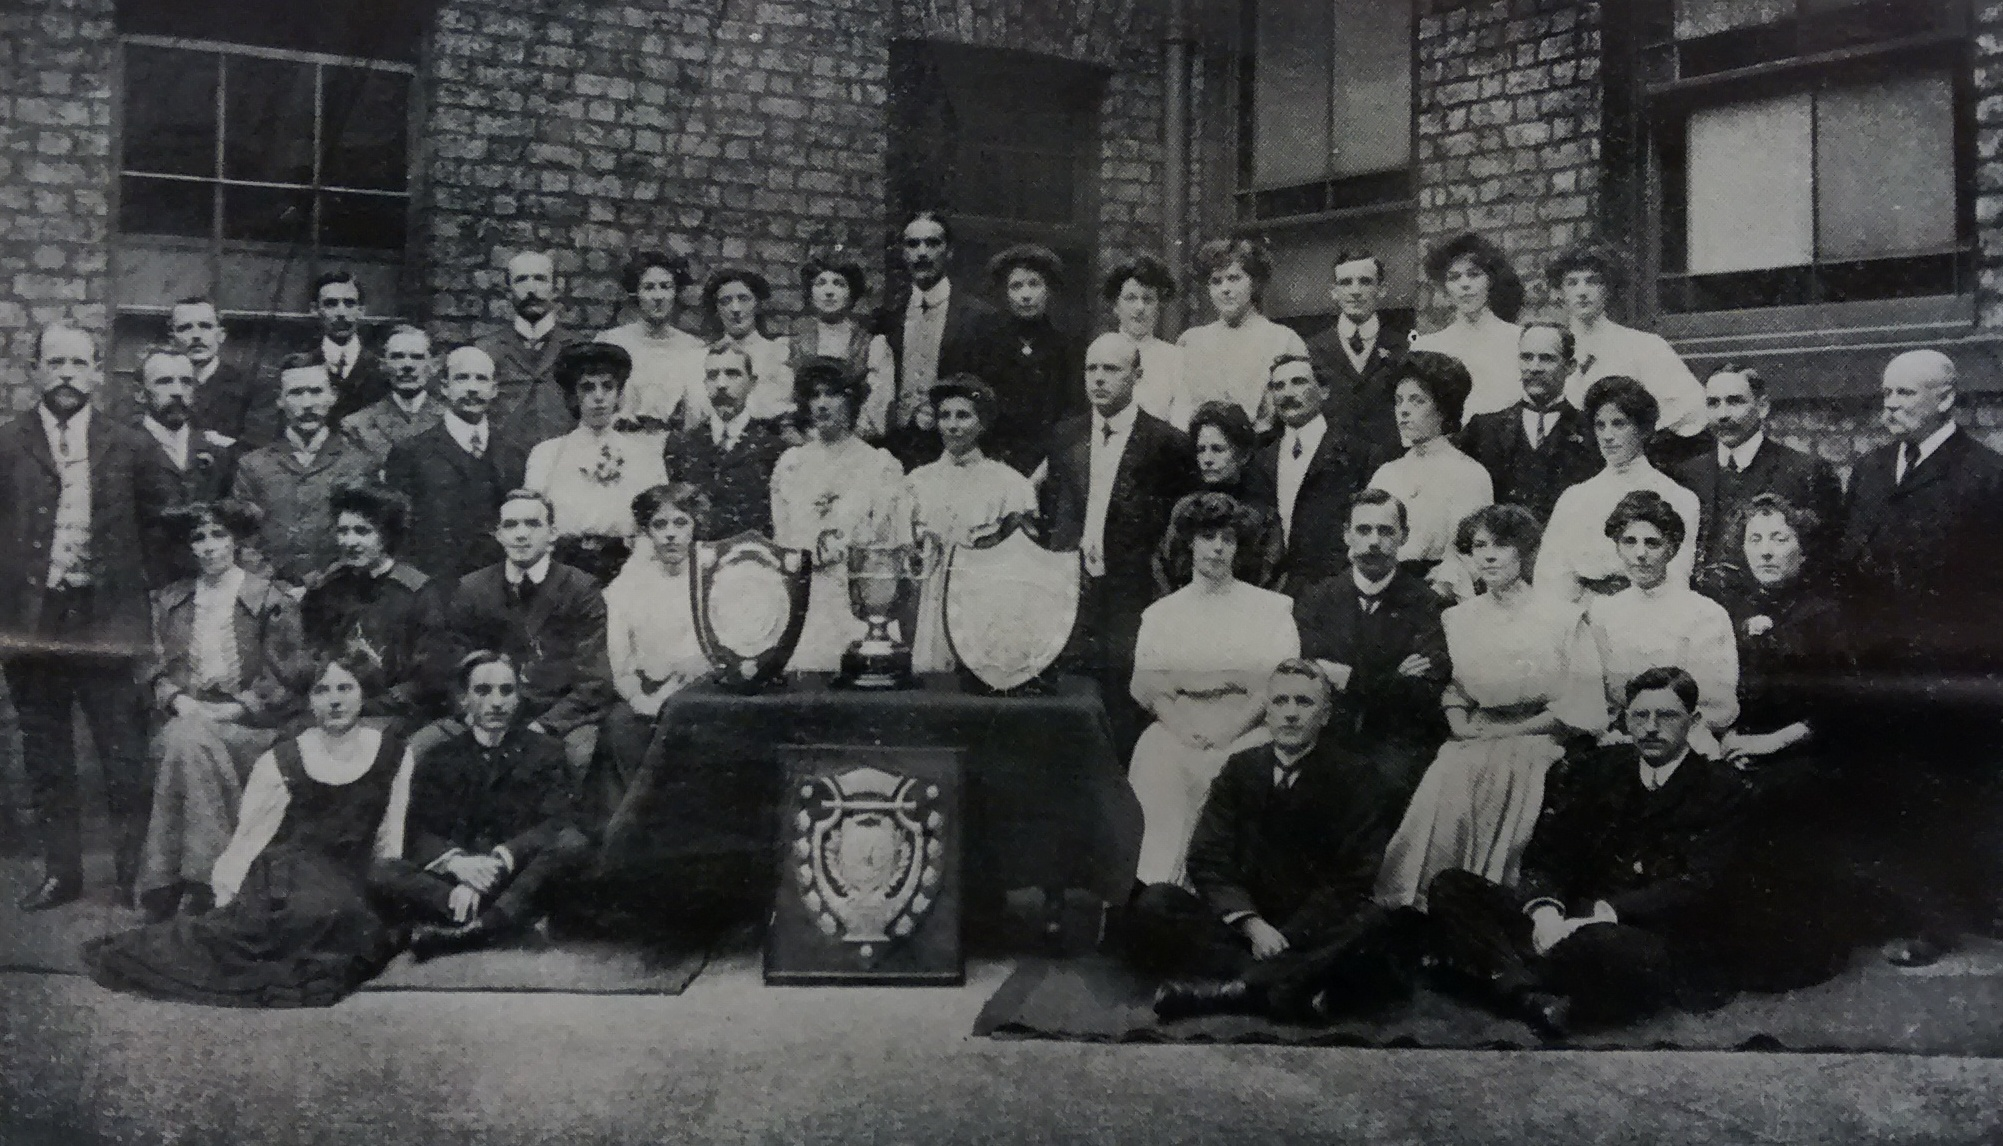 Centenary Wesleyan Church, St Saviourgate (now known as Central Methodist Church). Choir photograph taken in 1907. Matthew Rymer (organist) is shown.